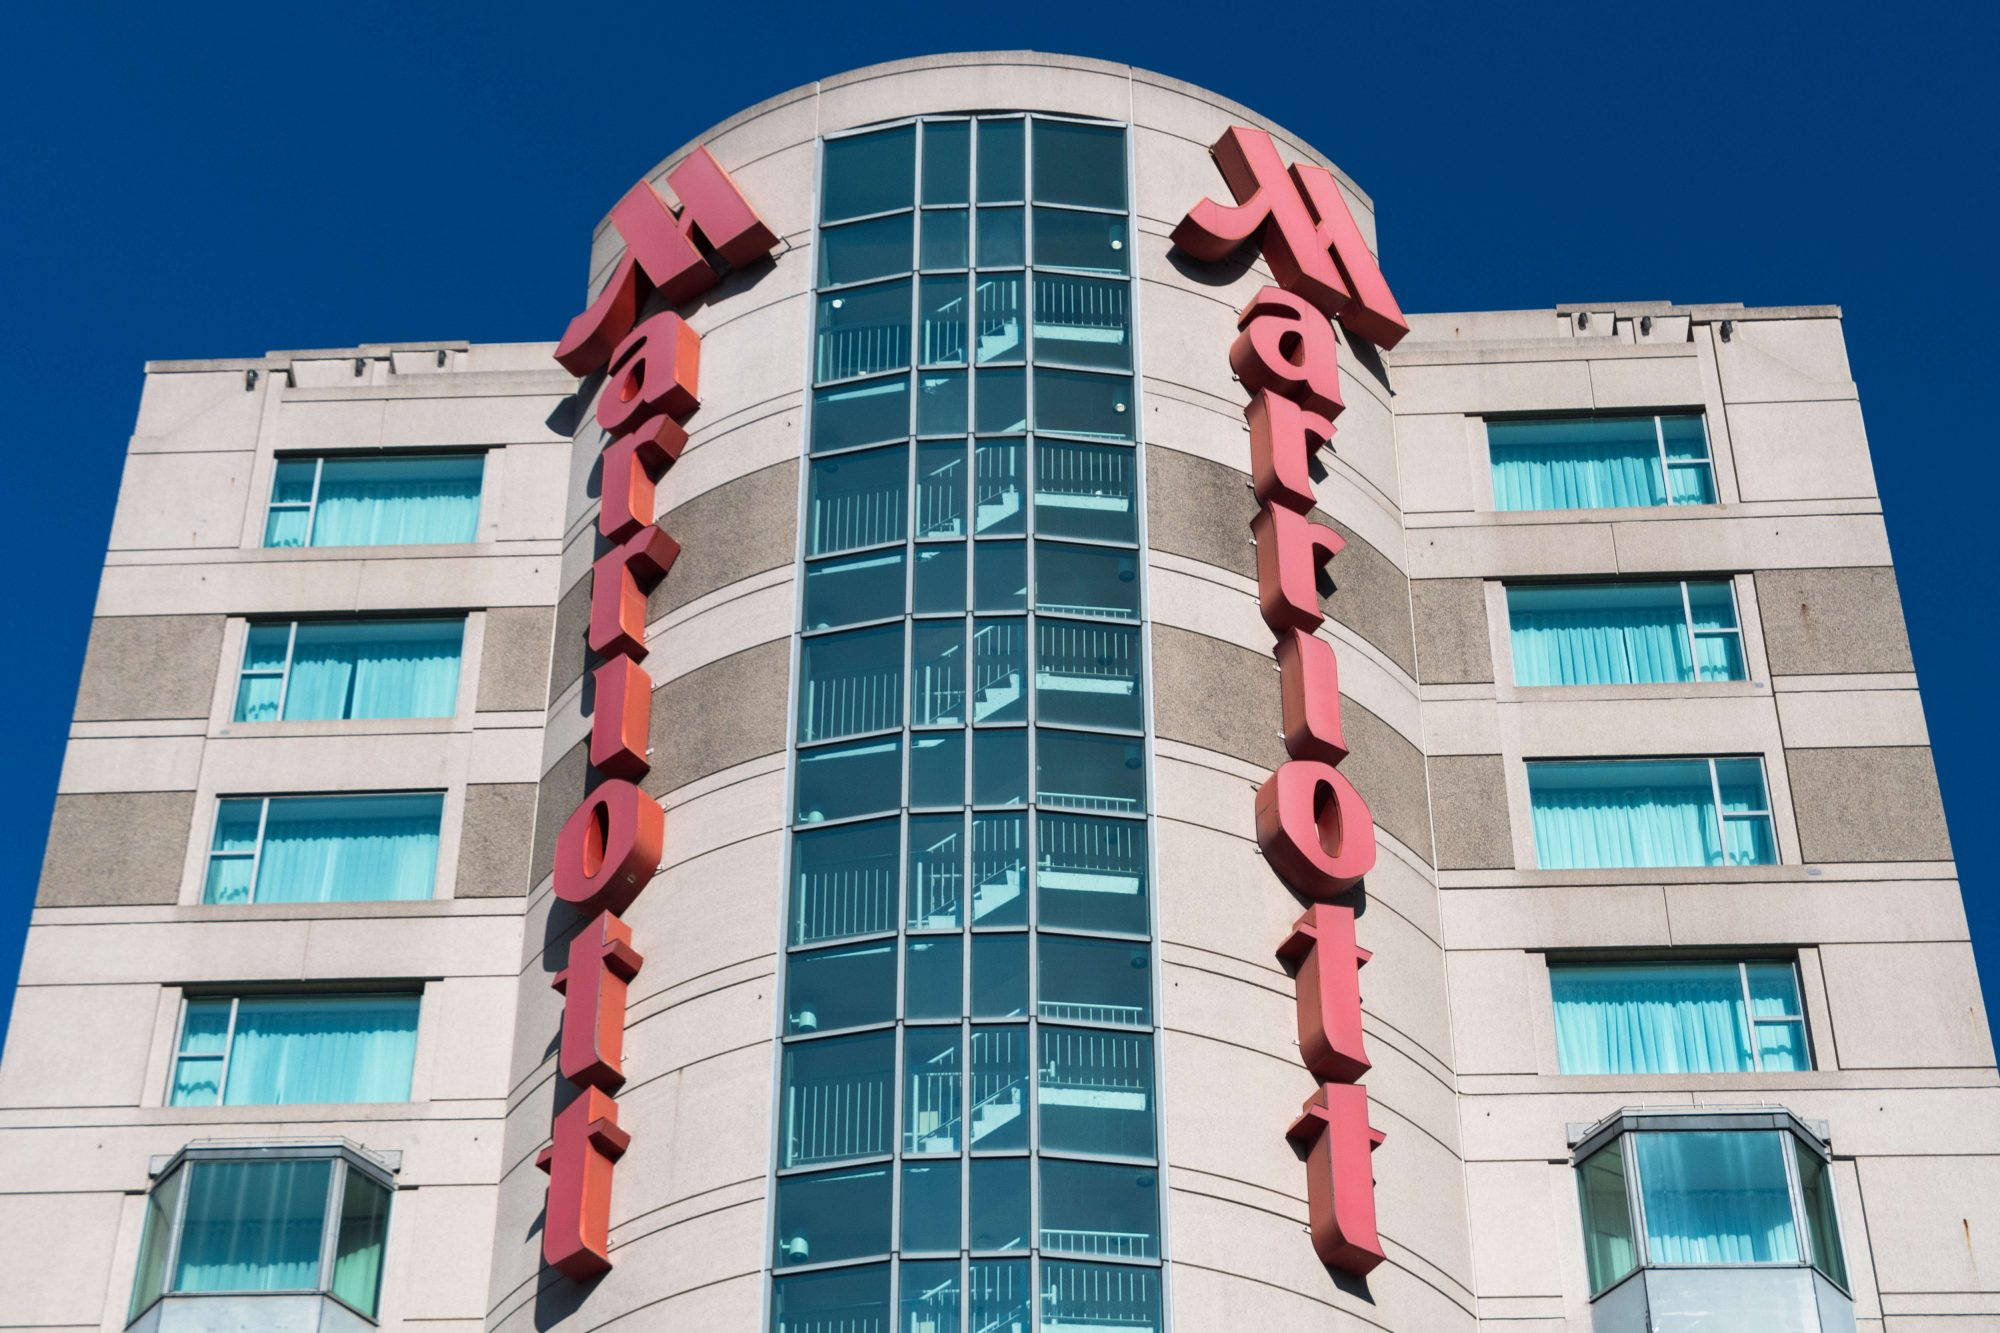 Marriott hotel sign in a downtown building, red metal